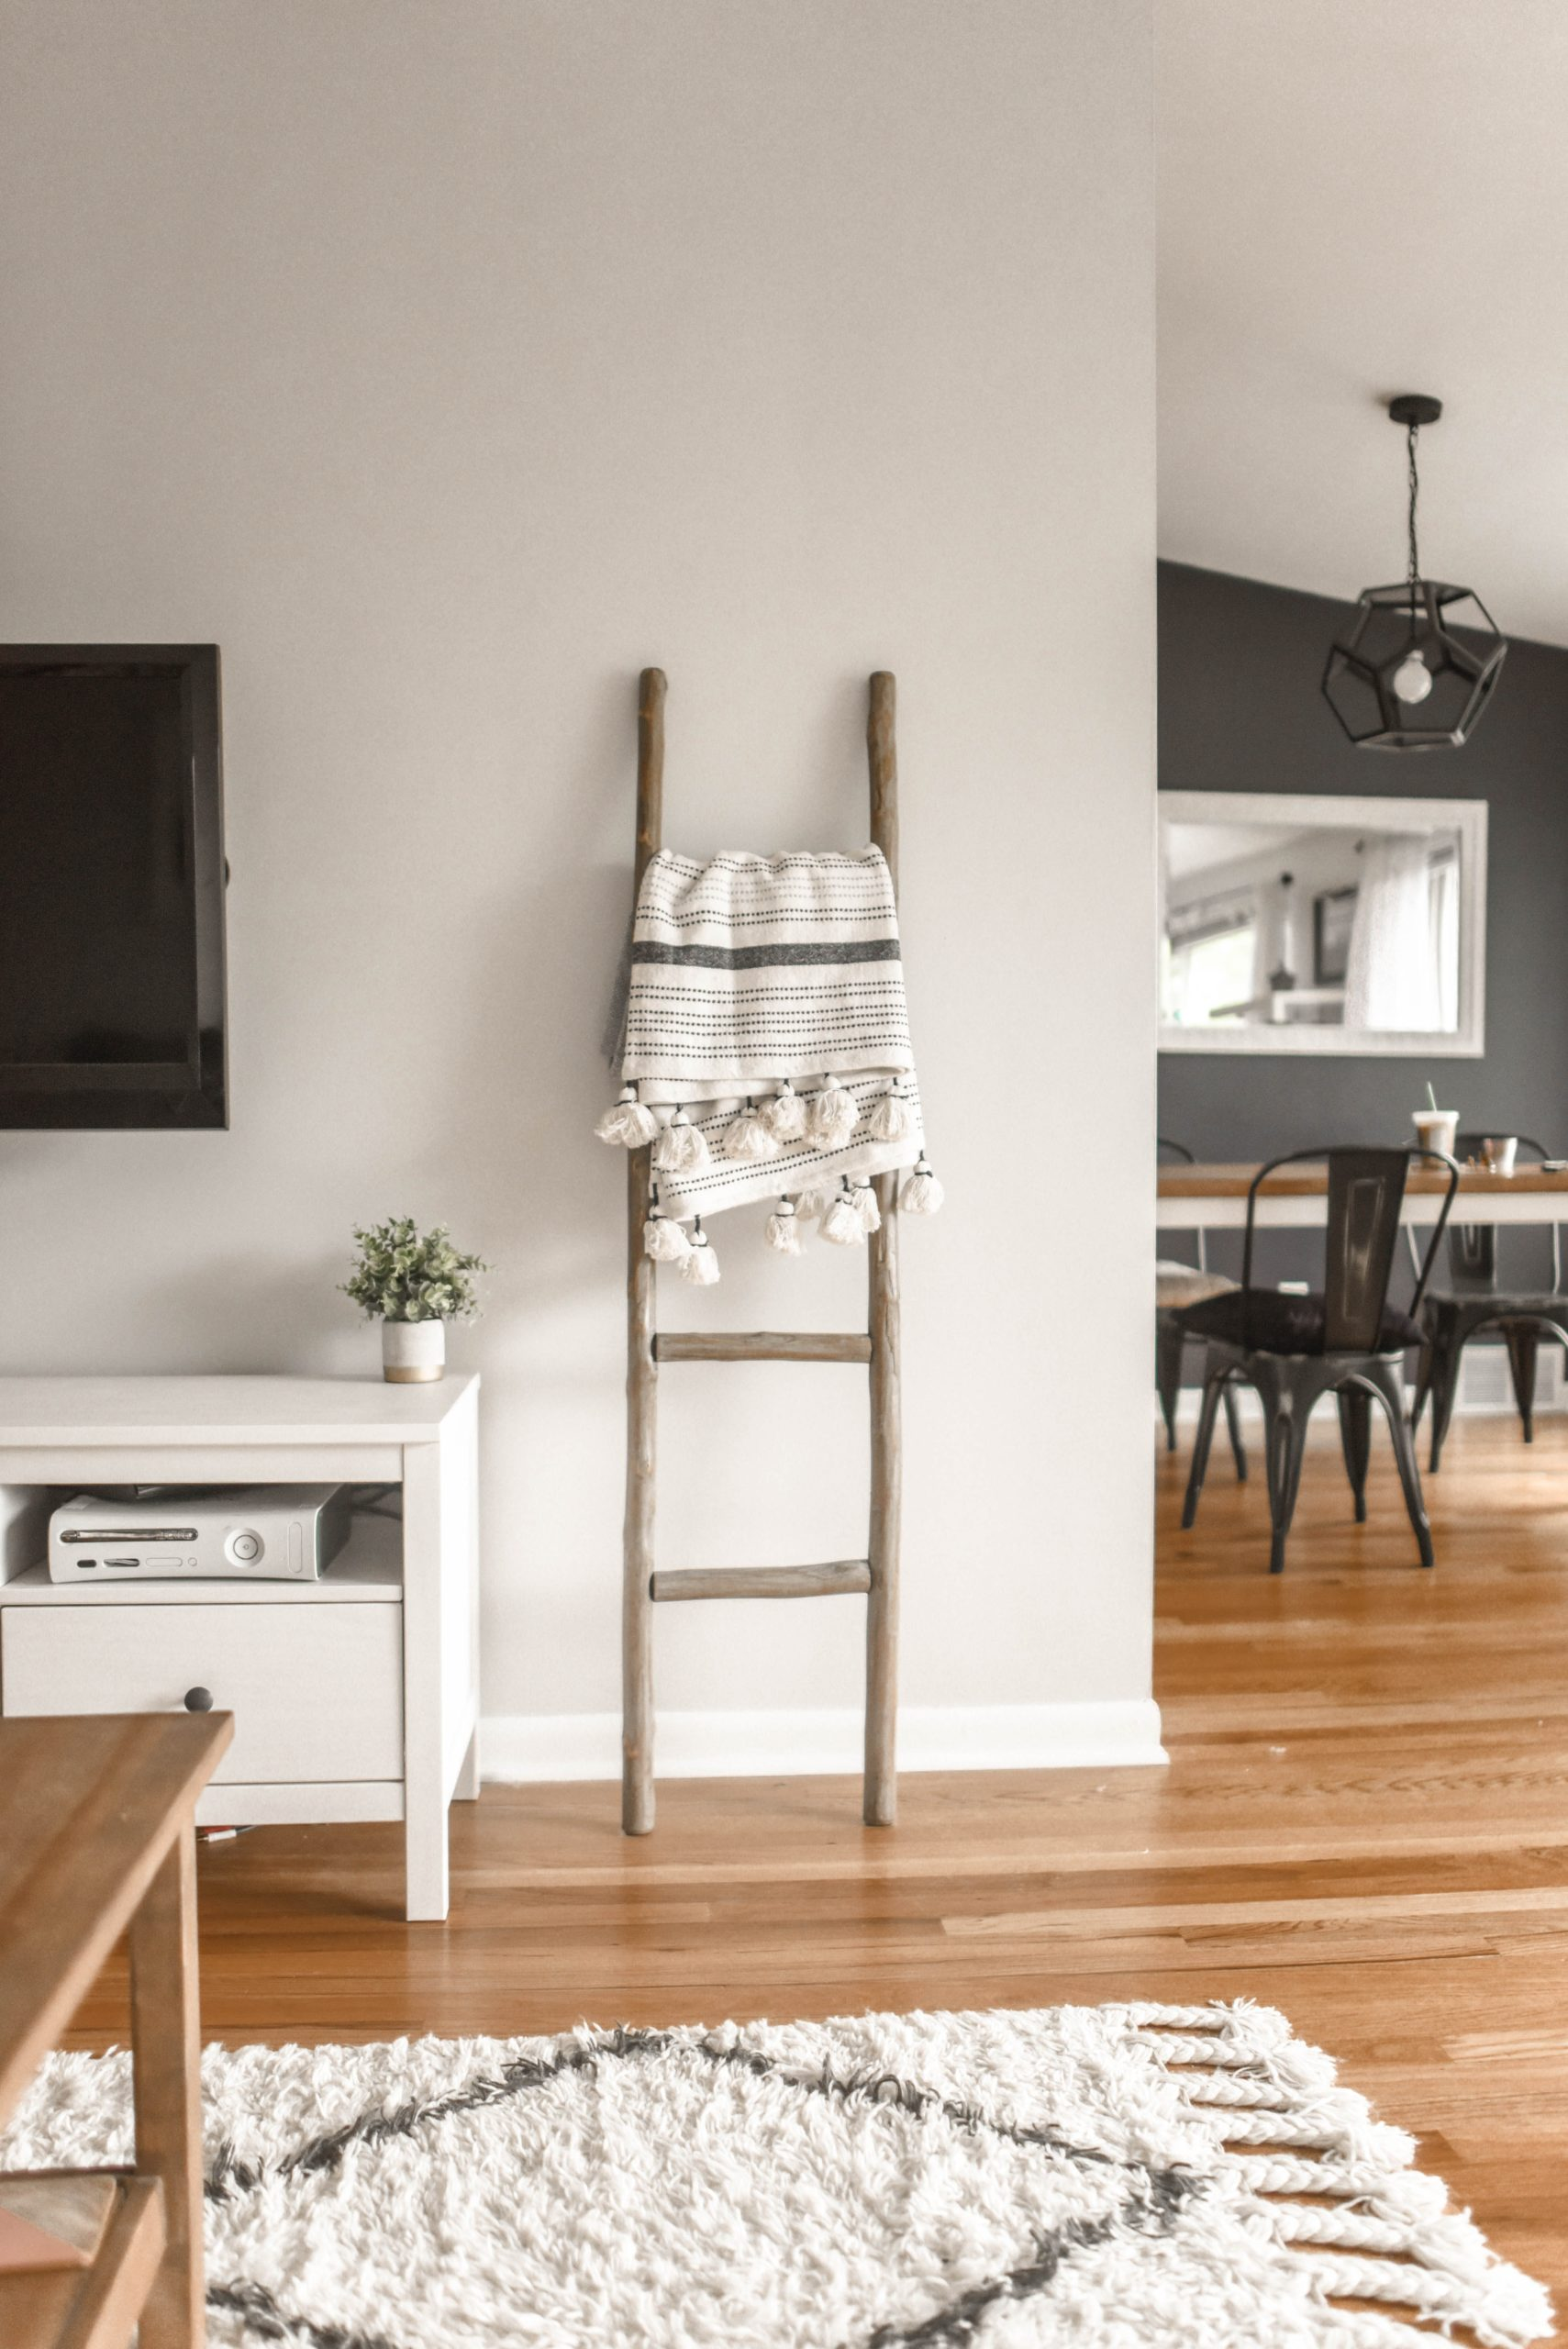 Furnishing Ideas For Your House: Amazing Tips